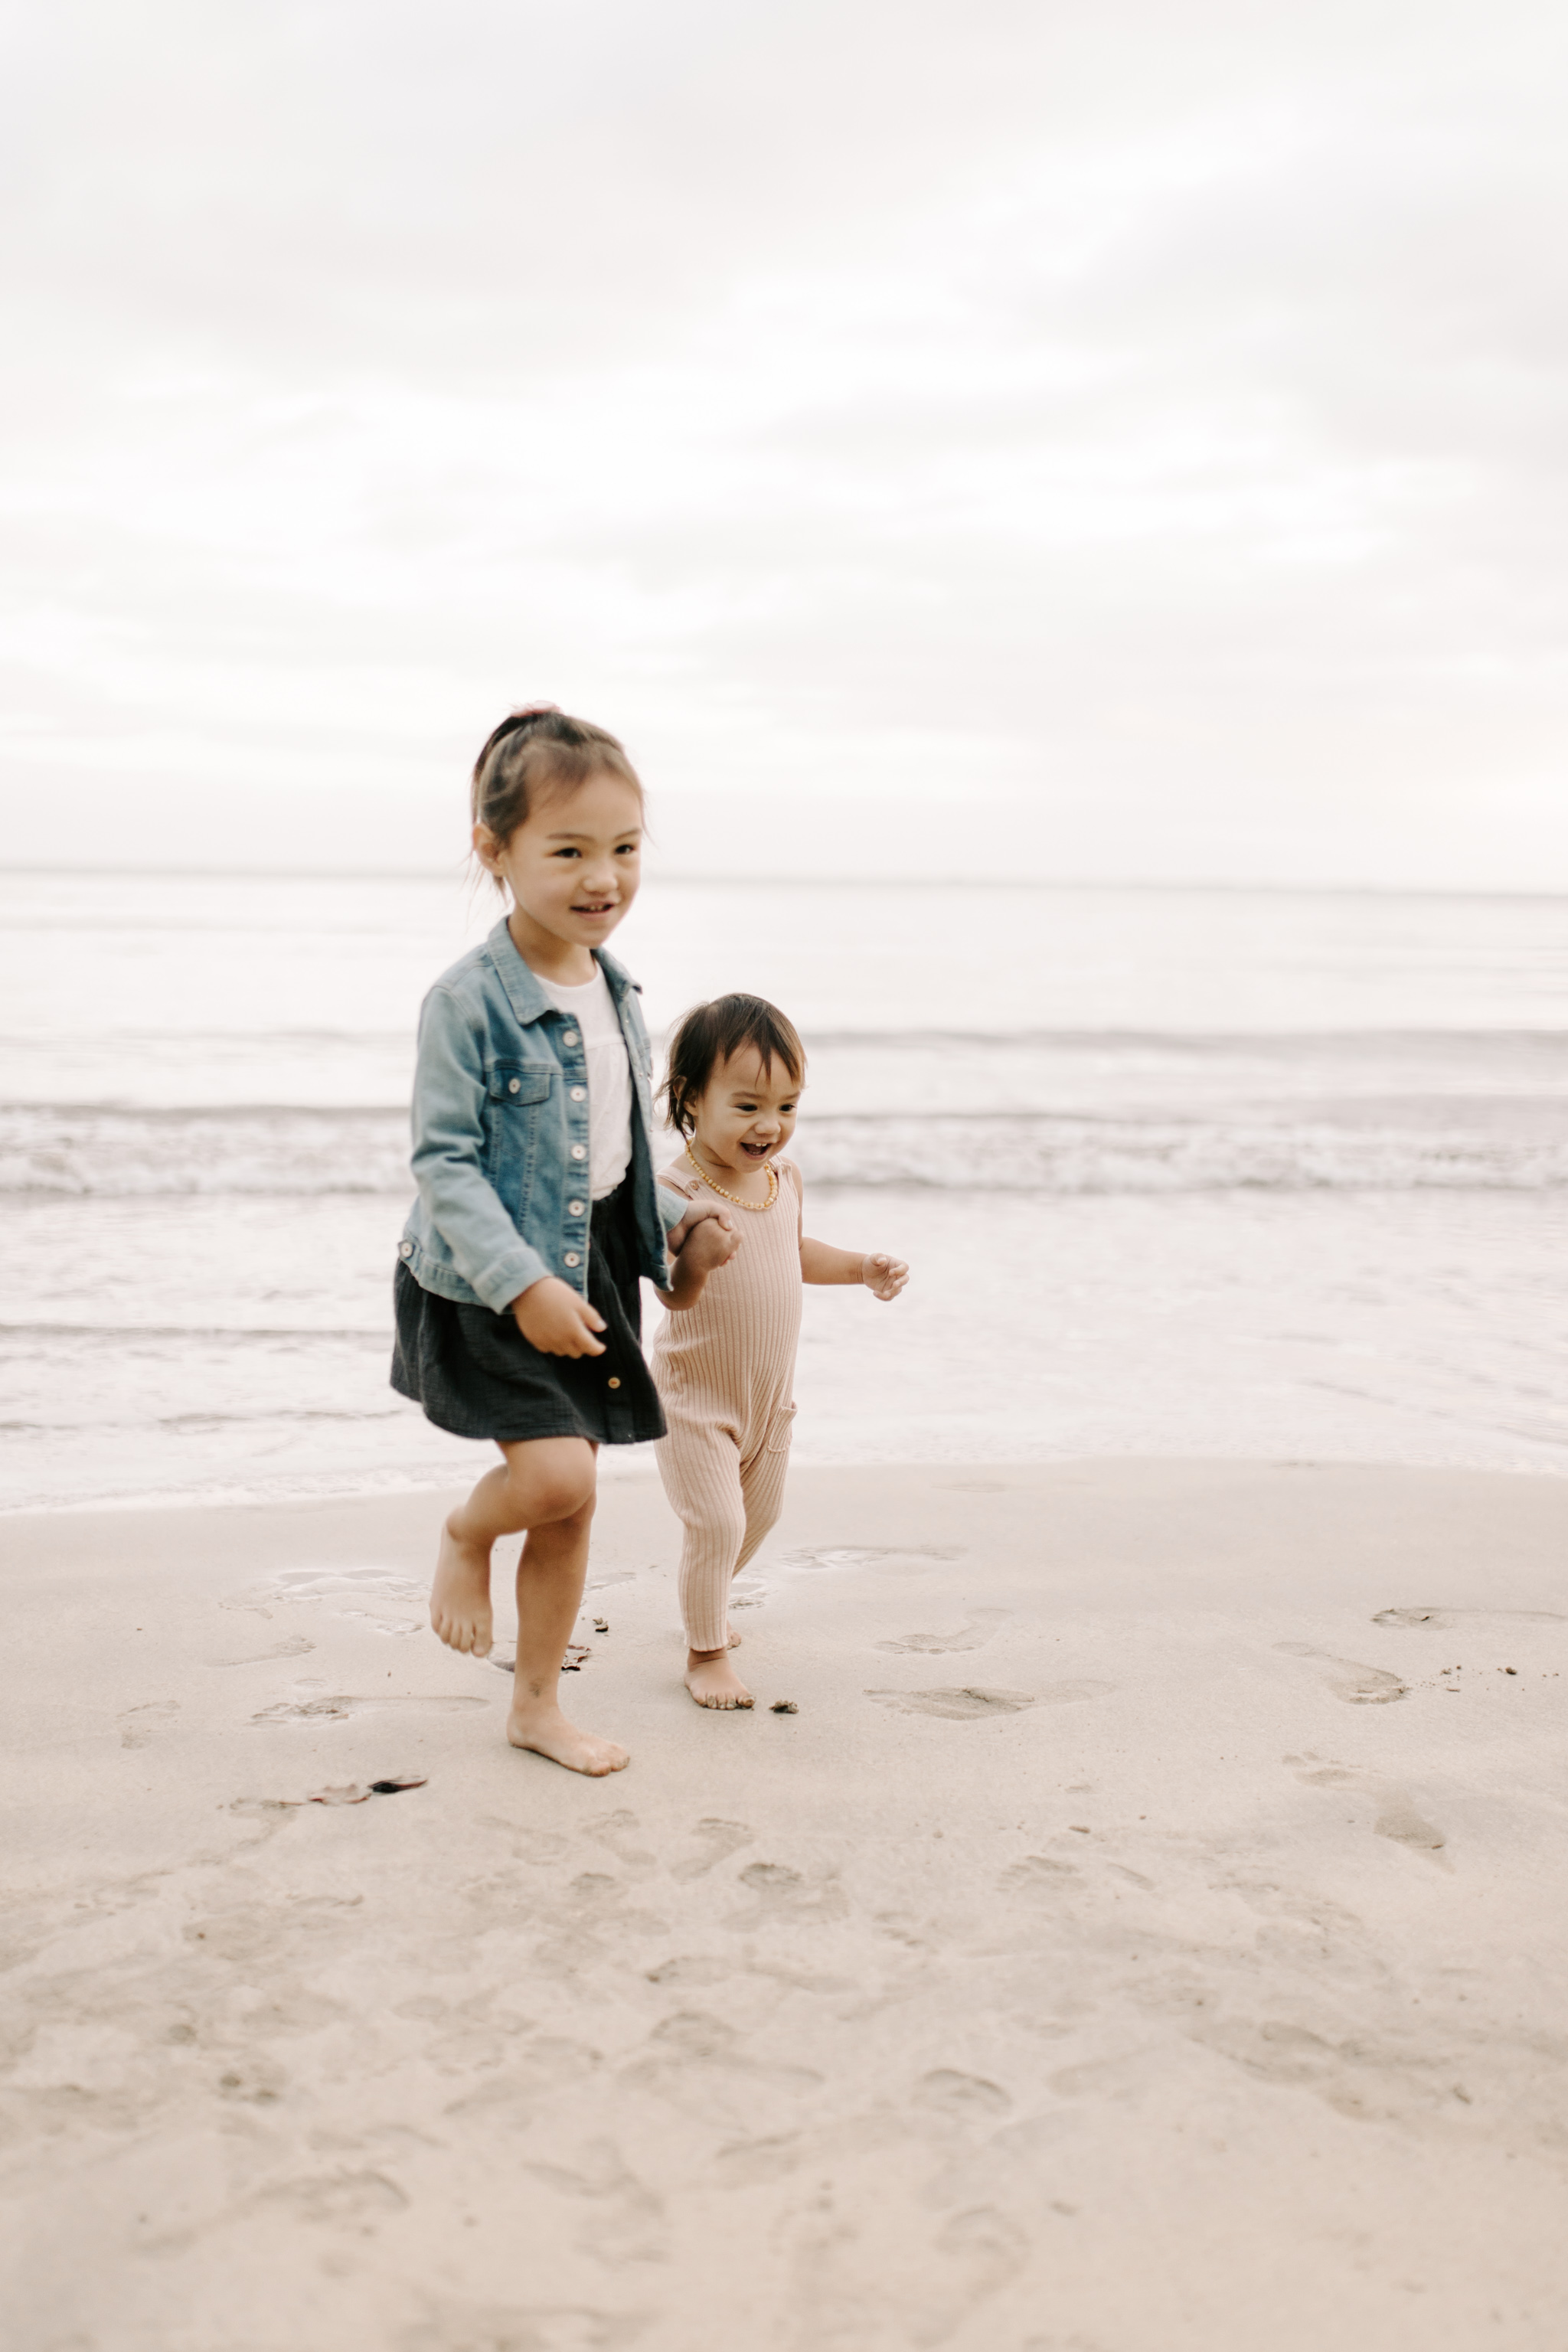 Cute Pictures of Sisters at Kahana Bay by Oahu Family Photographer Desiree Leilani